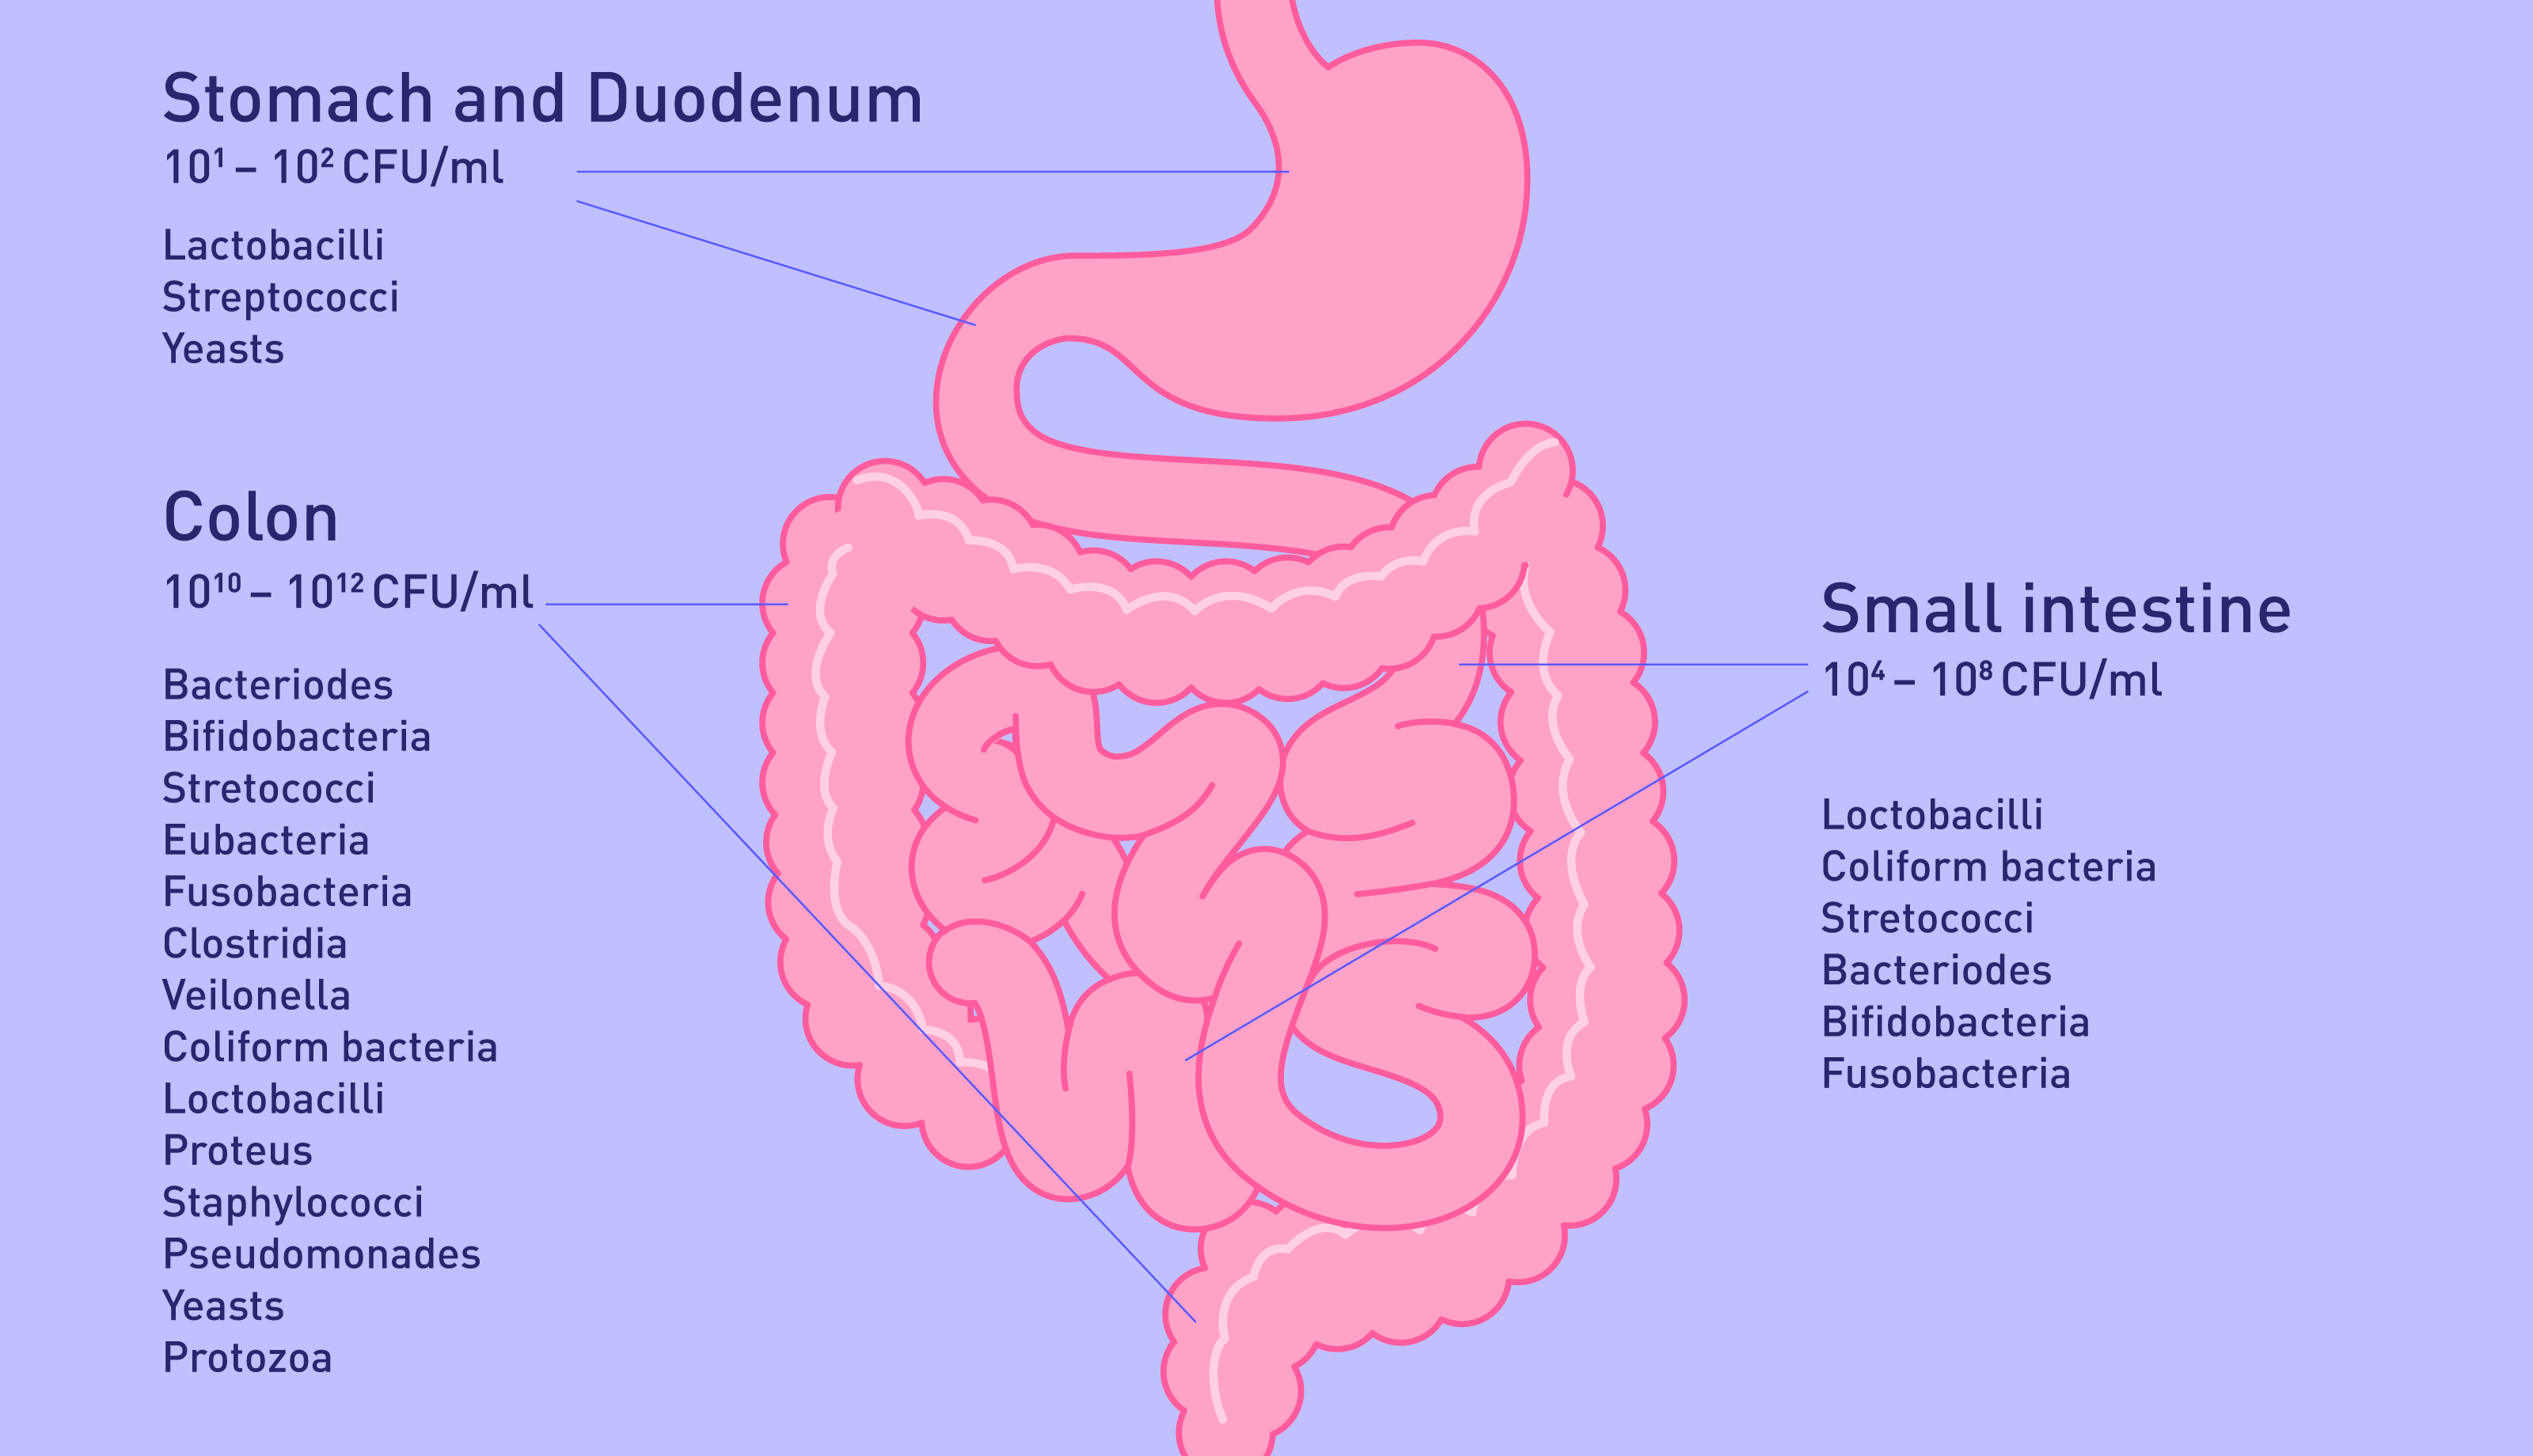 The gut microbiome helps to regulate blood pressure and digestion